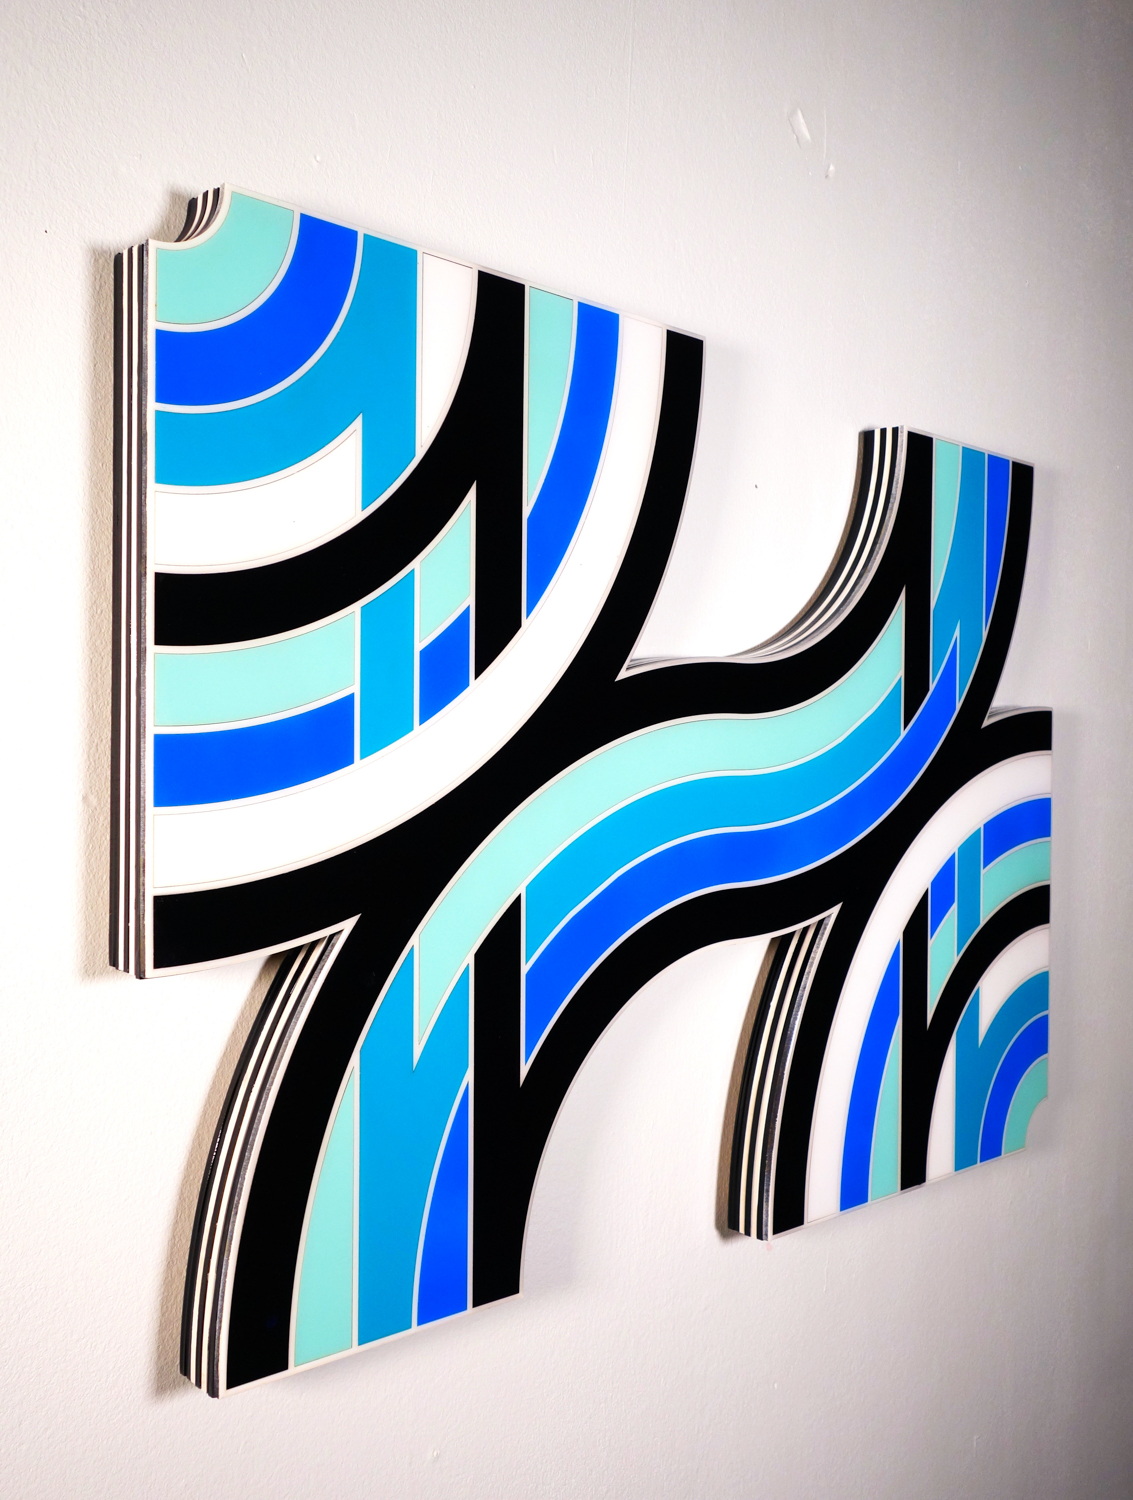 """Tavar Zawacki  SMOOTH SAILING - SEATTLE  (2018) Laser cut wood panels, acrylic paint, wood nails, Industrial UV protected resin 31.5"""" x 23"""" x 1.5""""  INQUIRE"""